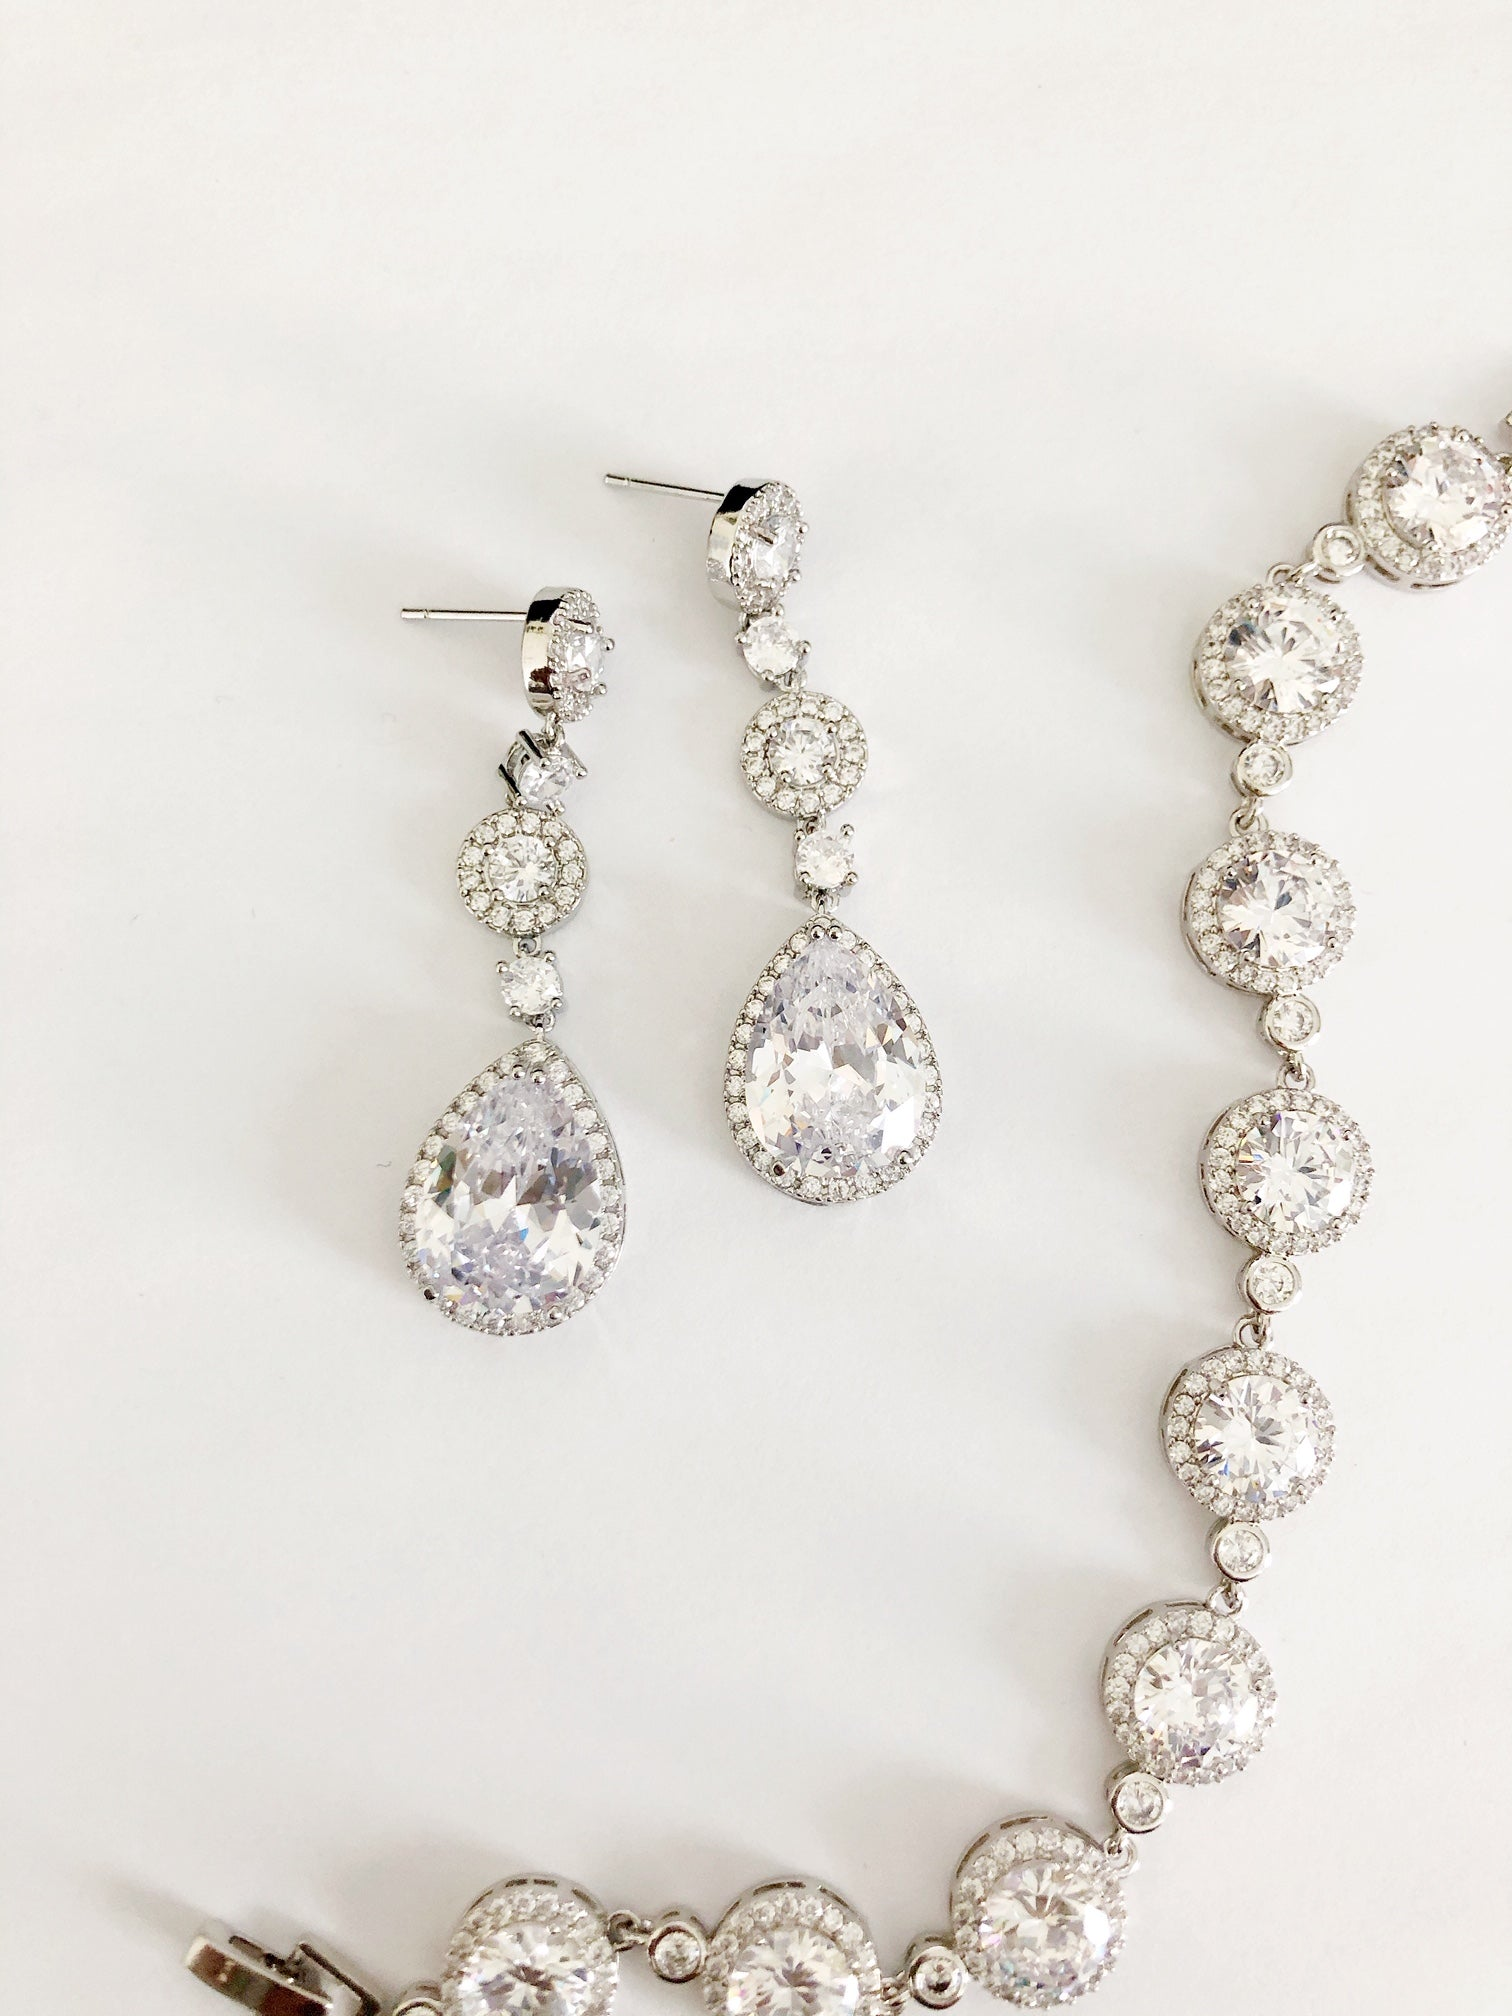 Nola Silver Diamond Earrings and Bracelet Set